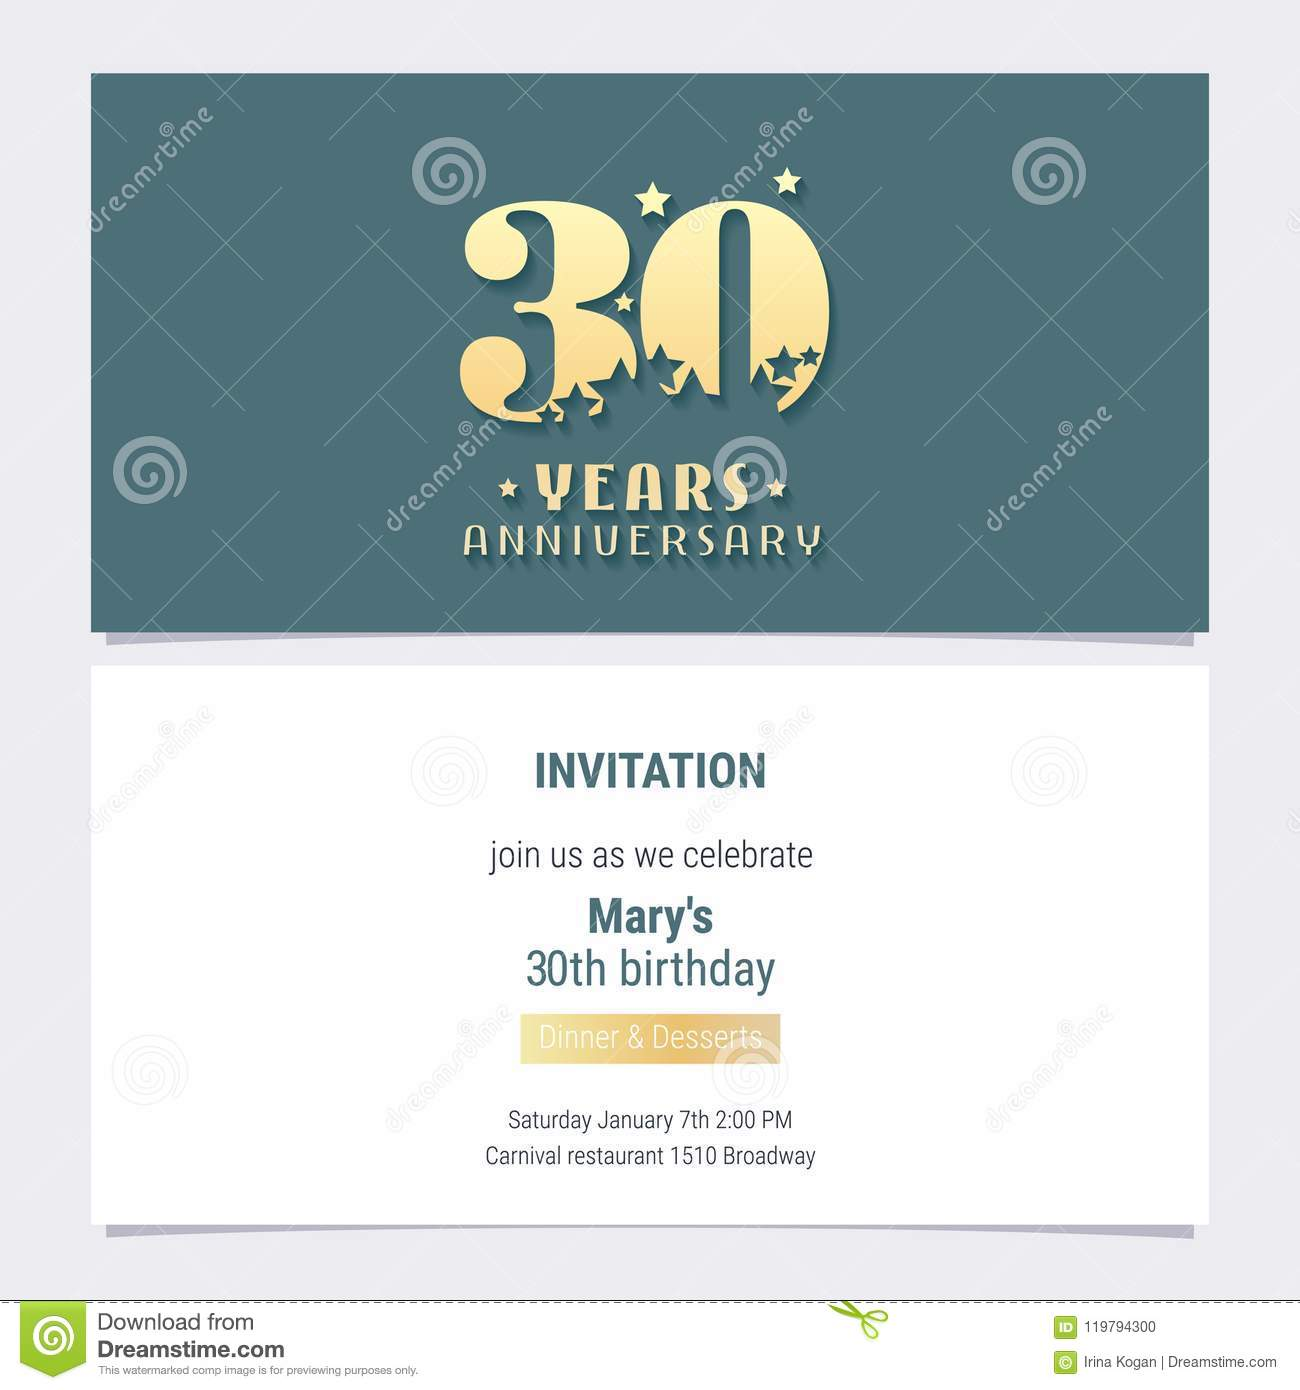 30 Years Anniversary Invitation Vector Illustration Template Design Element For 30th Birthday Card Party Invite